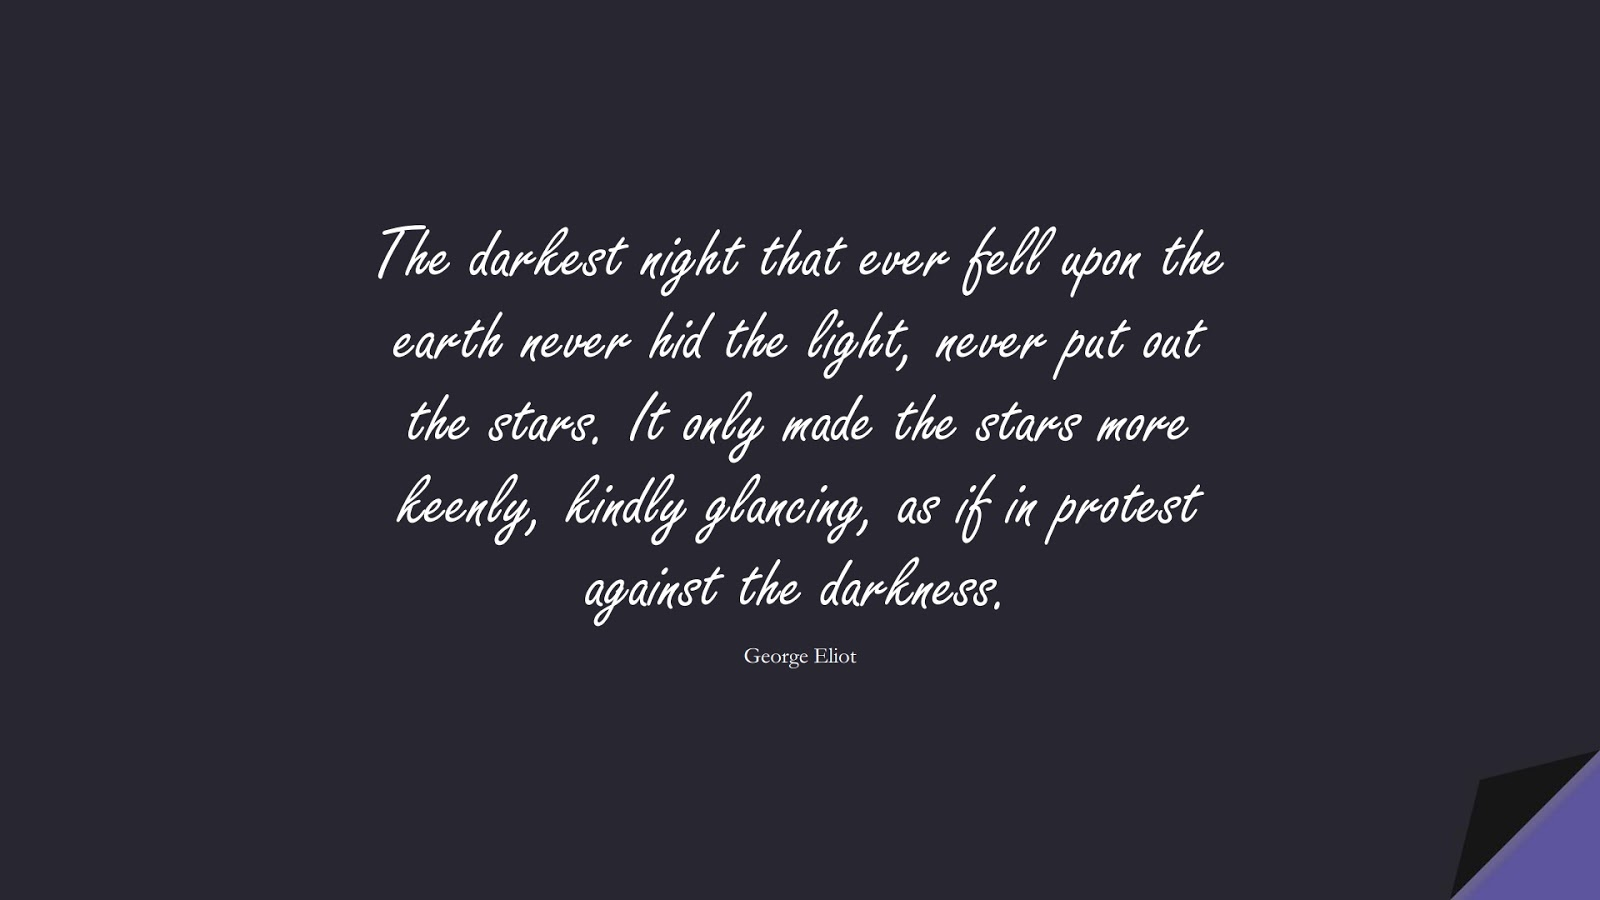 The darkest night that ever fell upon the earth never hid the light, never put out the stars. It only made the stars more keenly, kindly glancing, as if in protest against the darkness. (George Eliot);  #EncouragingQuotes